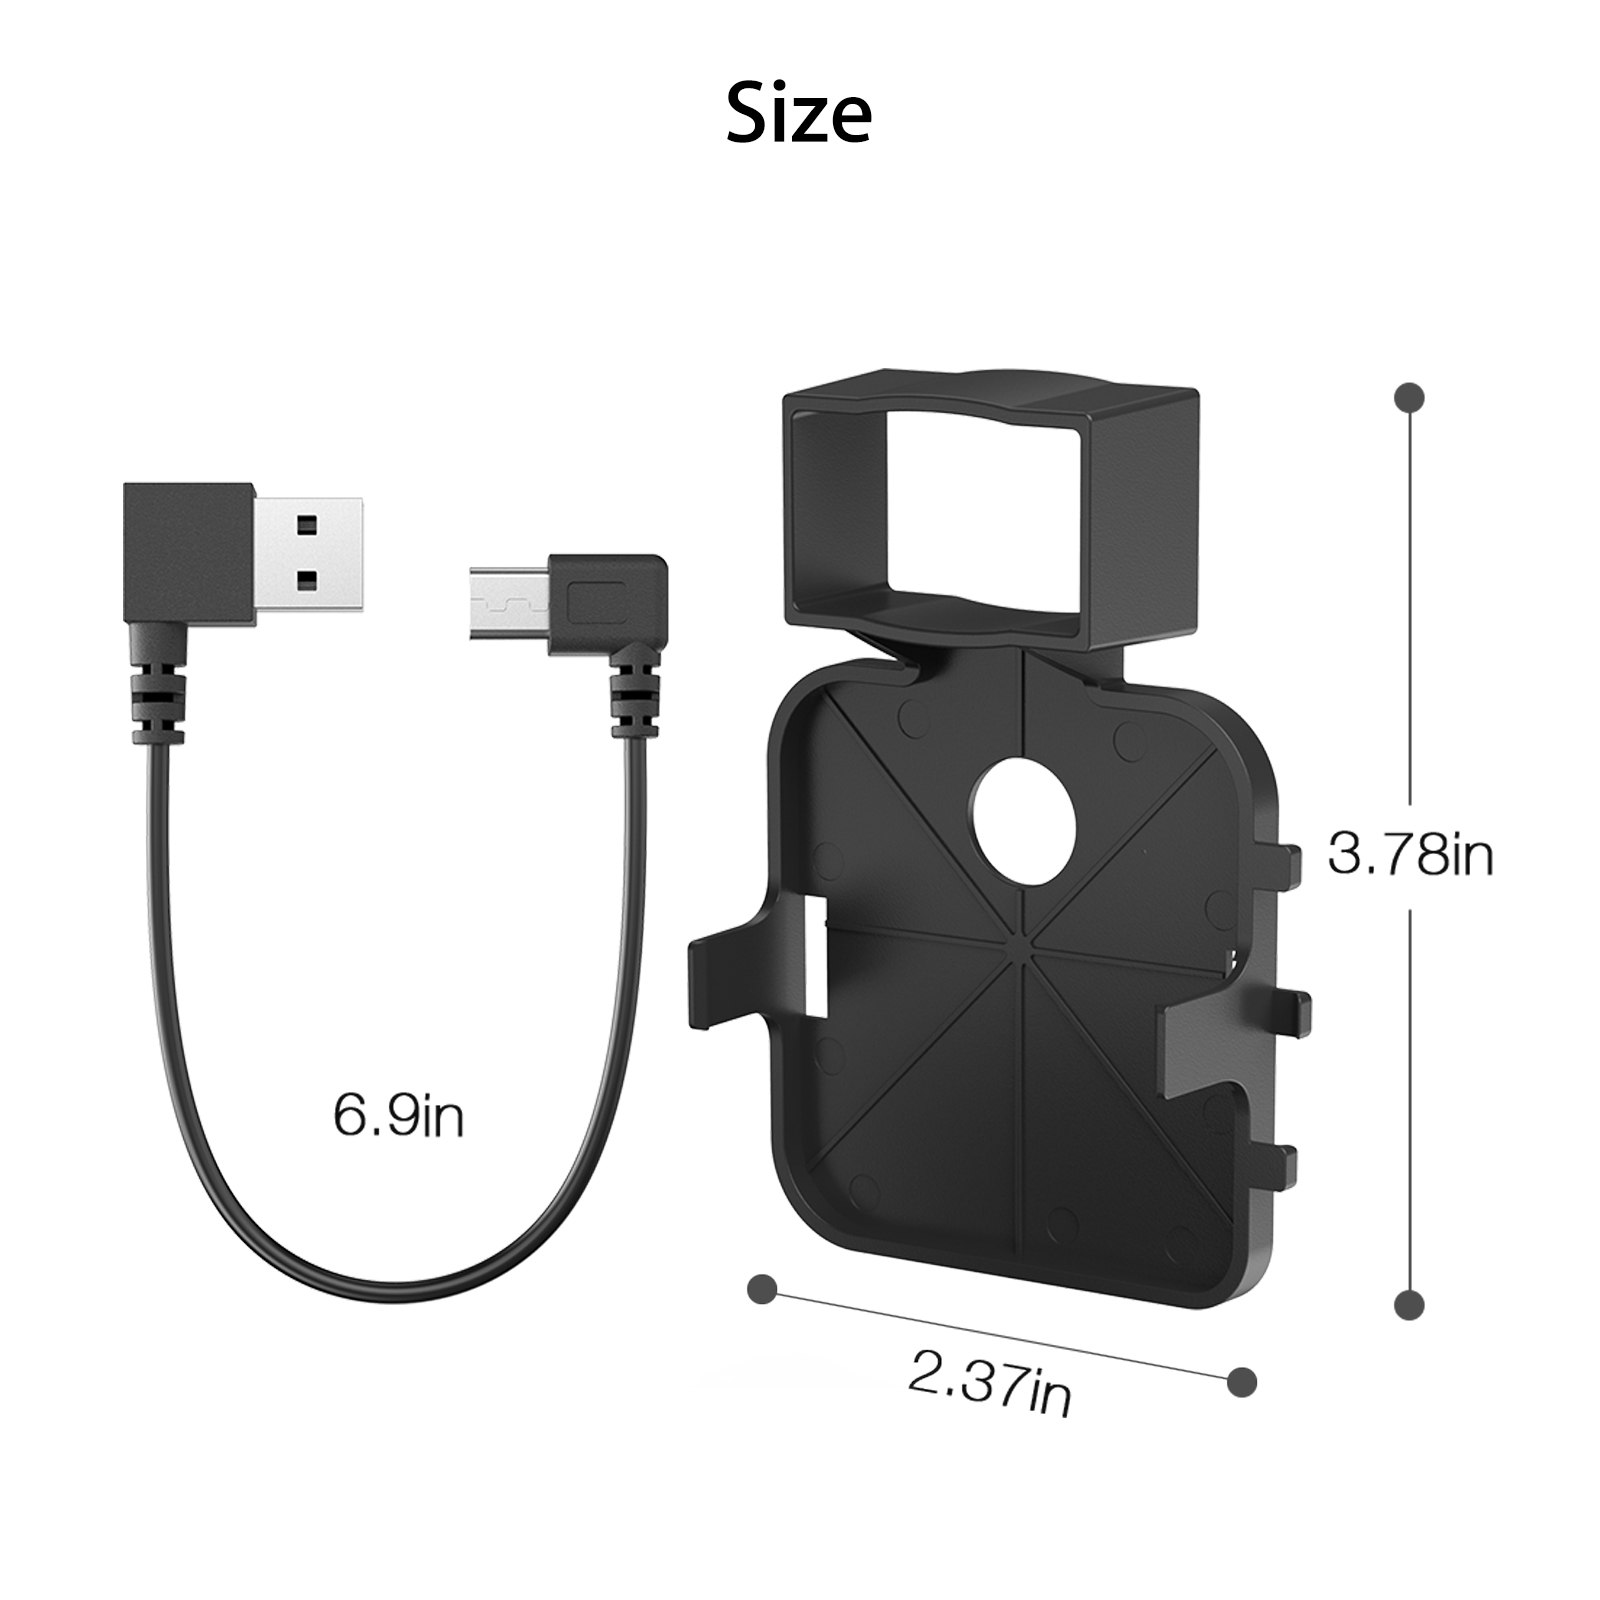 Hanger Holder Stand for Blink XT Blink Outlet Wall Mount for Blink Sync Module